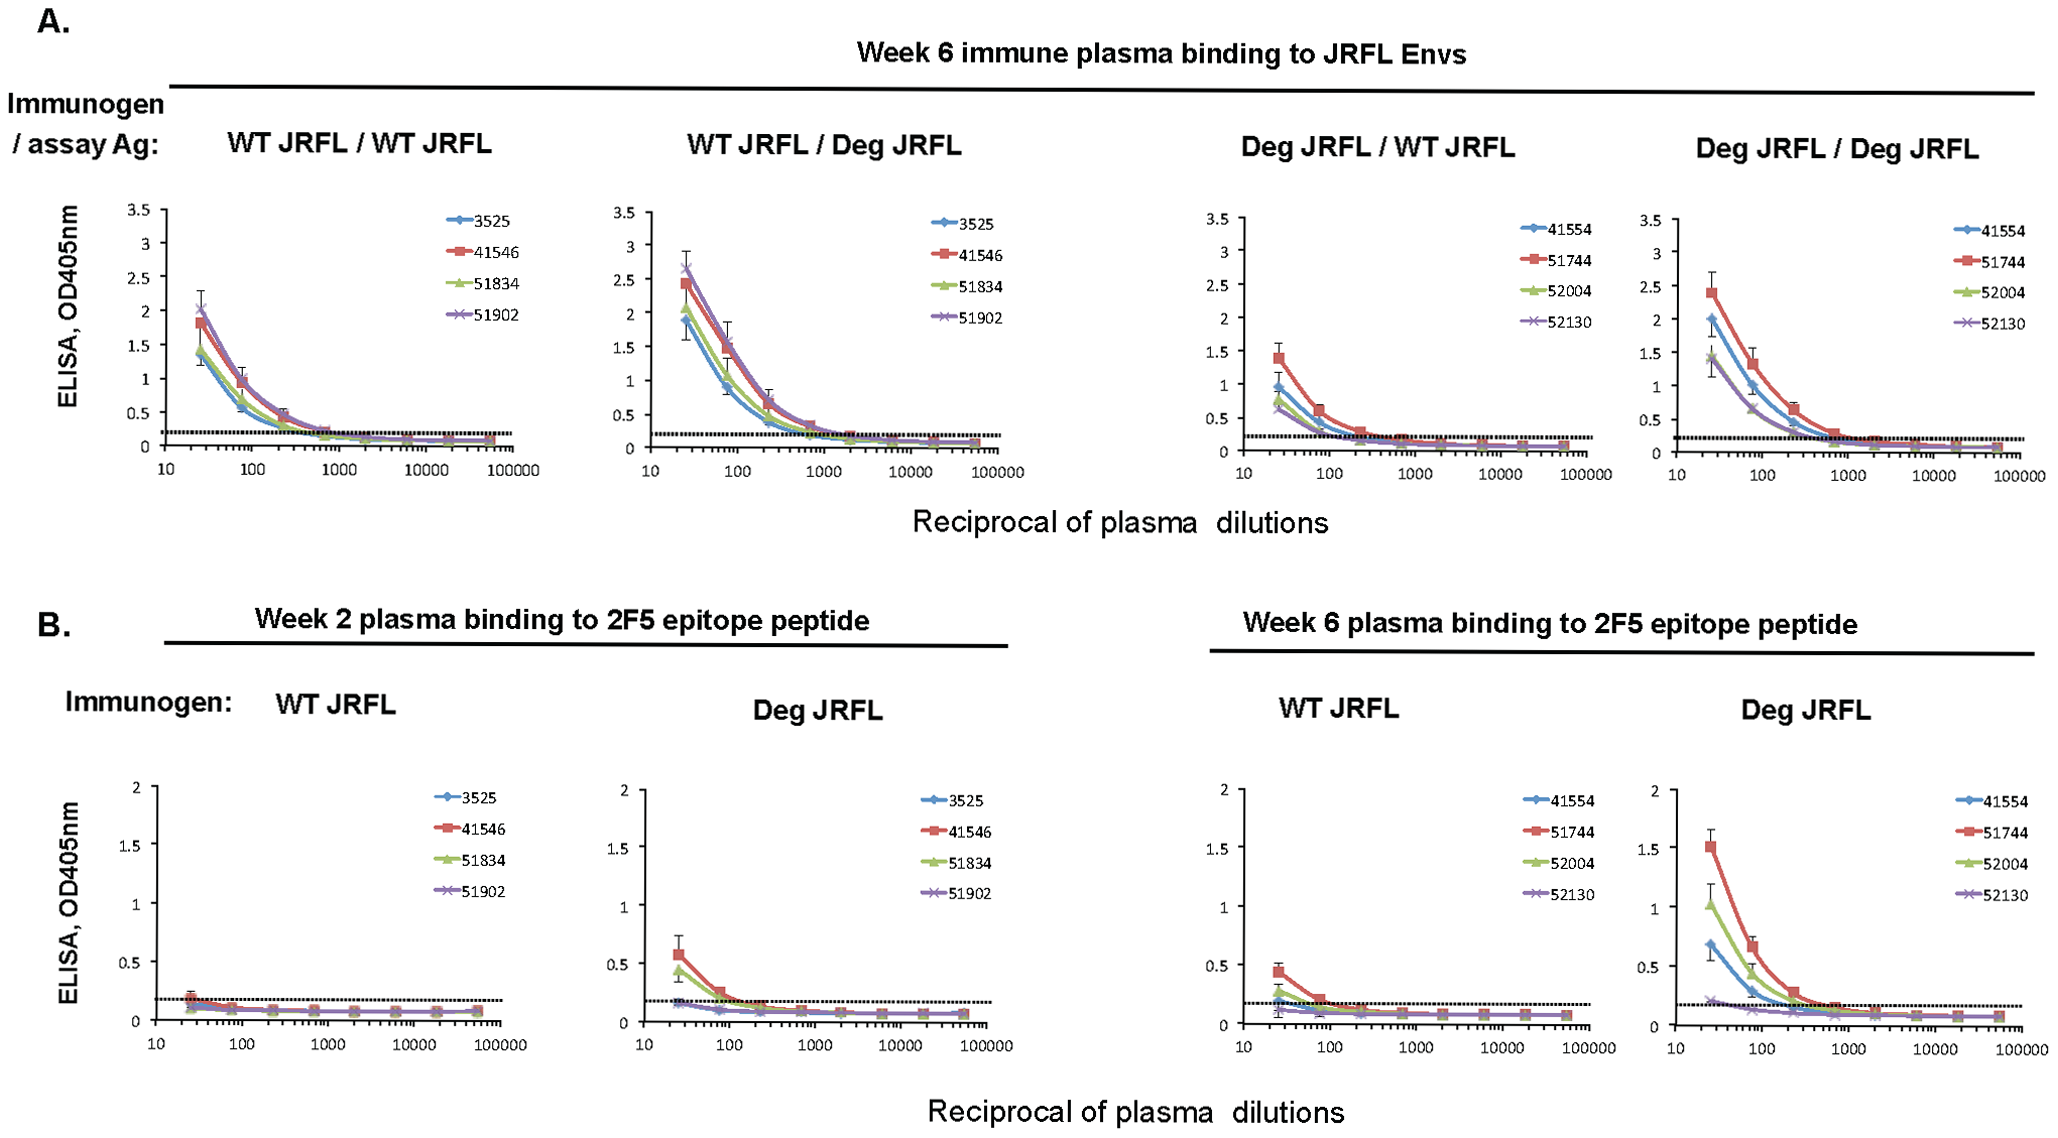 Enhanced immunogenicity of deglycosylated JRFL gp140 Env as determined by plasma levels of 2F5 epitope binding antibodies in immunized rhesus macaques.